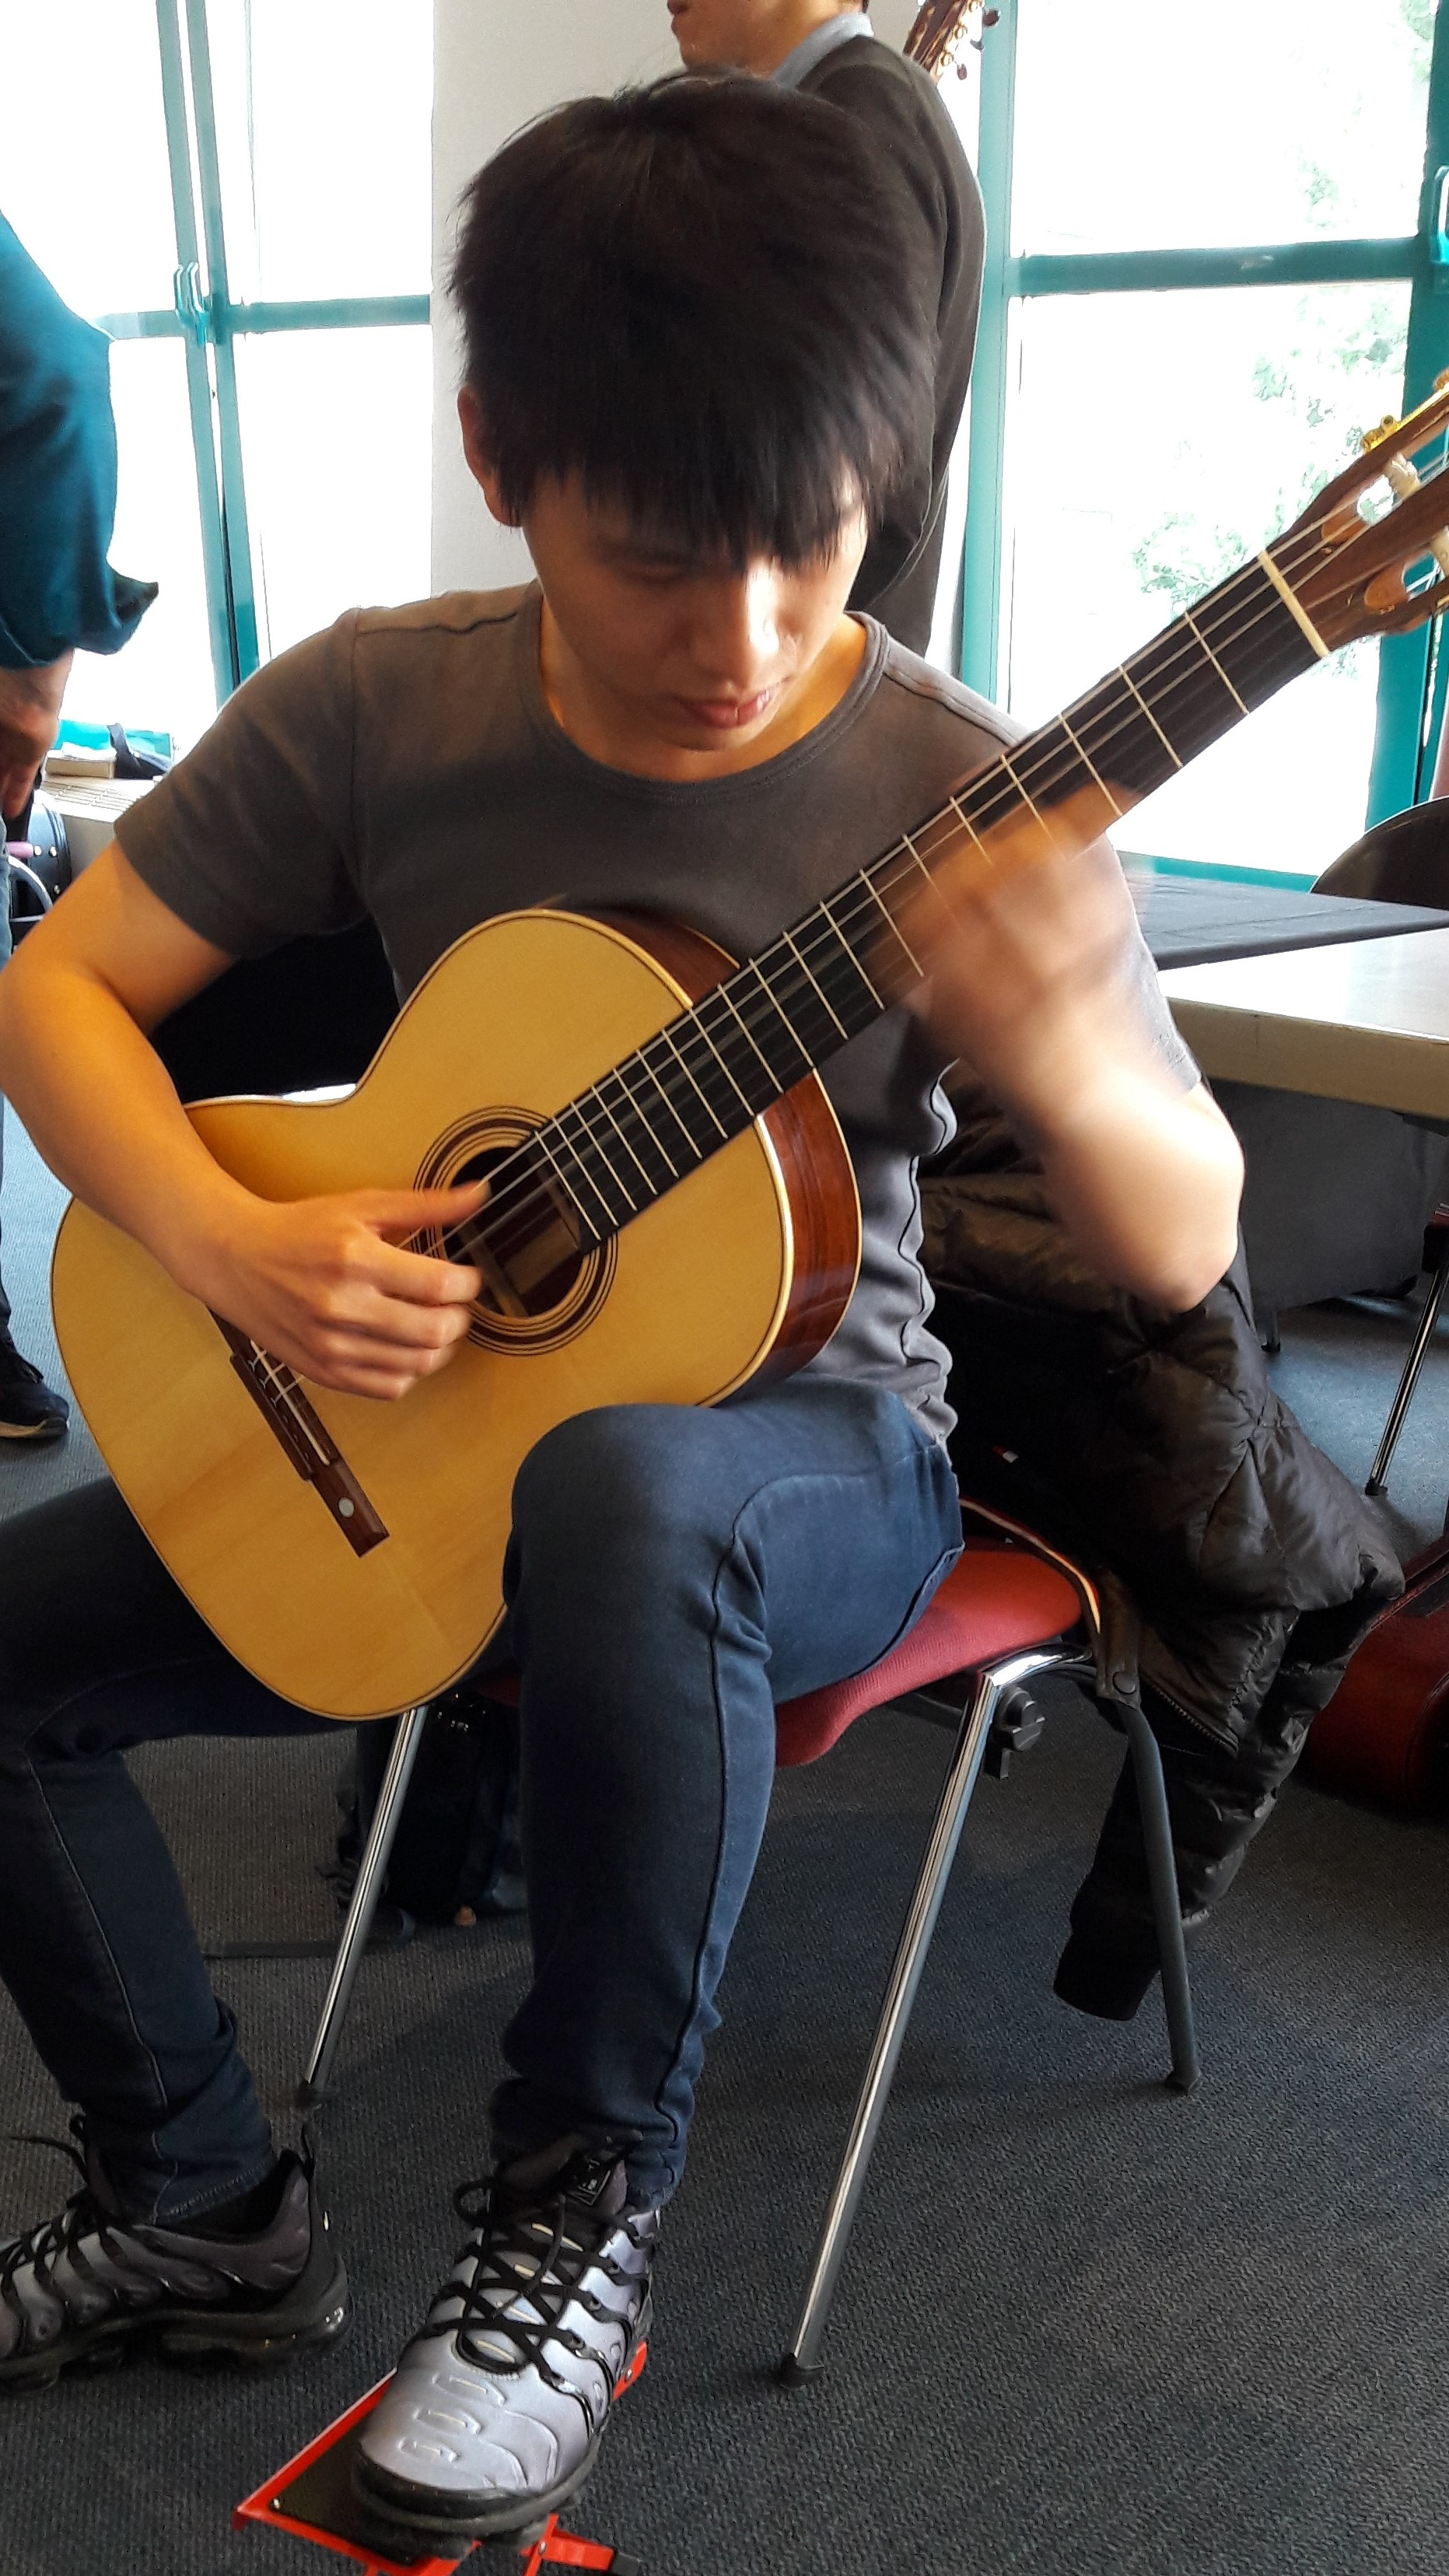 Competition player: Chinnawat themkumkwun trying out Den Toom Luthier in Rosewood.